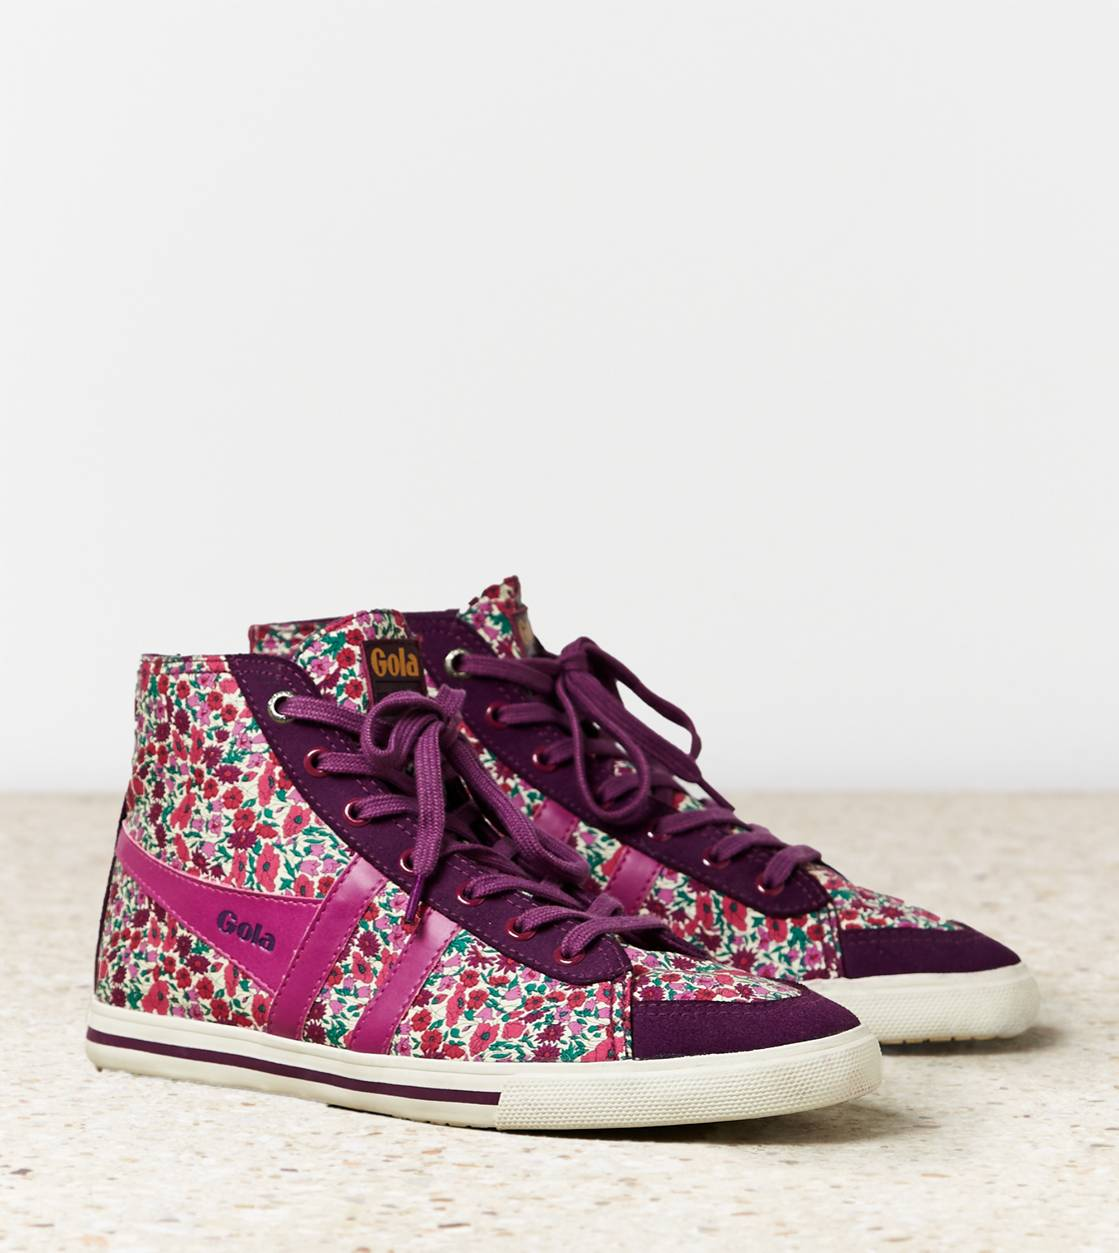 Berry Gola Liberty Quota High Top Sneaker